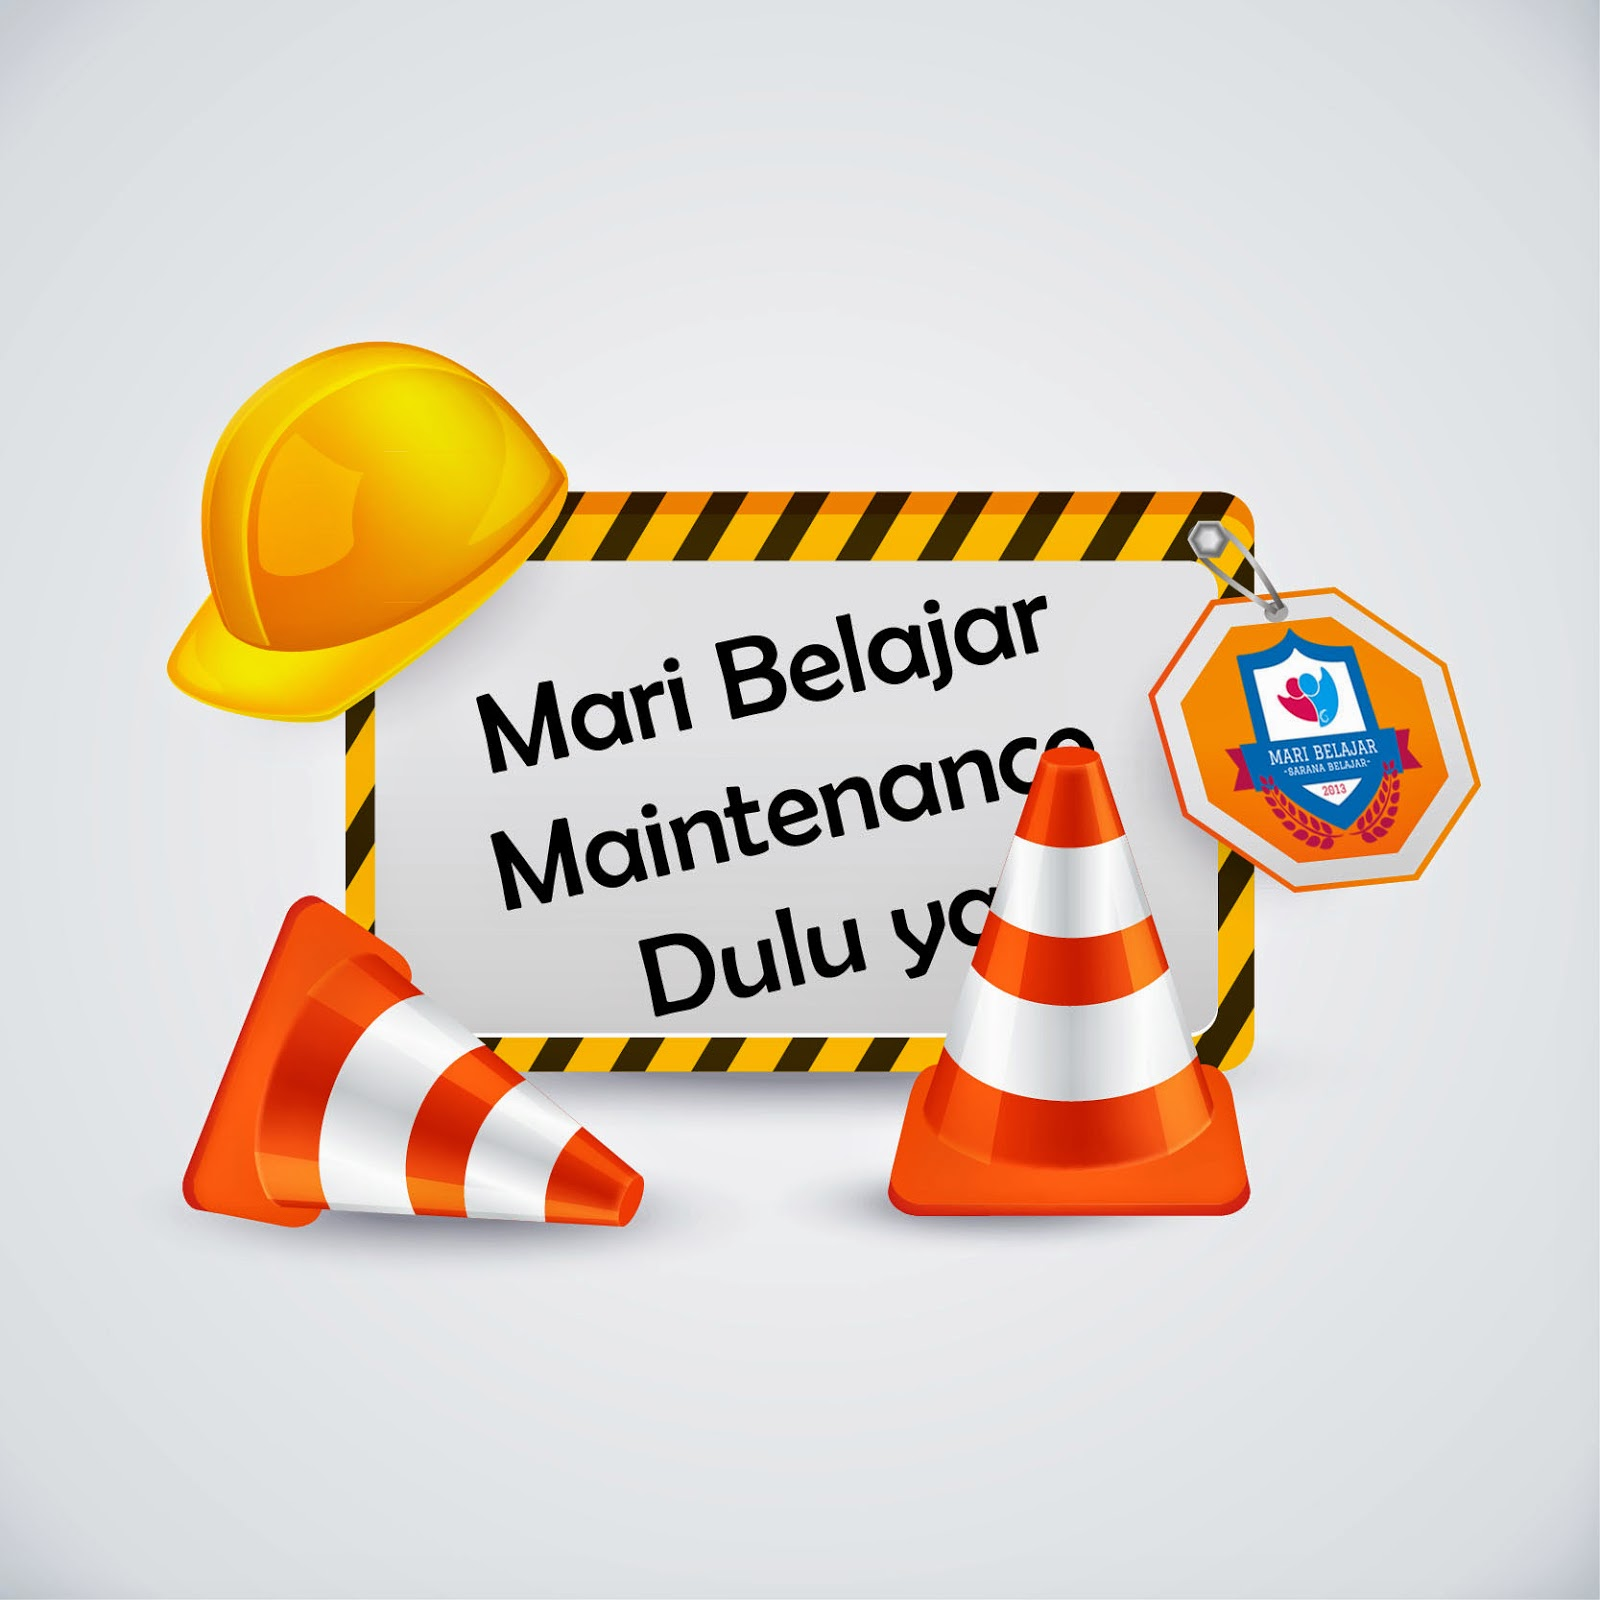 Maintenance 31 Januari 2015